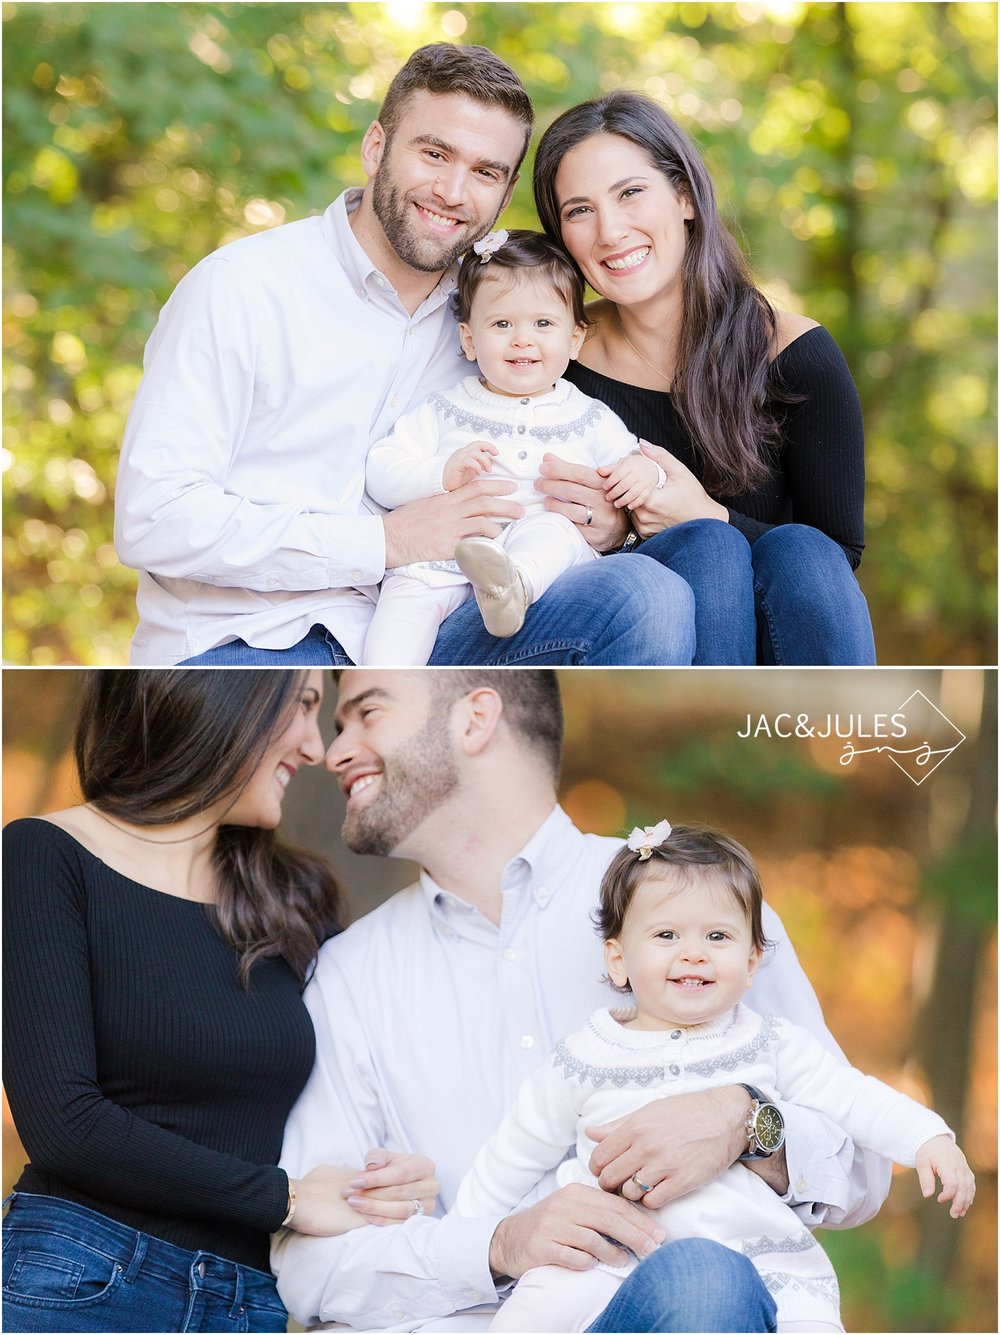 jacnjules photographs family at grace lord park in boonton, NJ